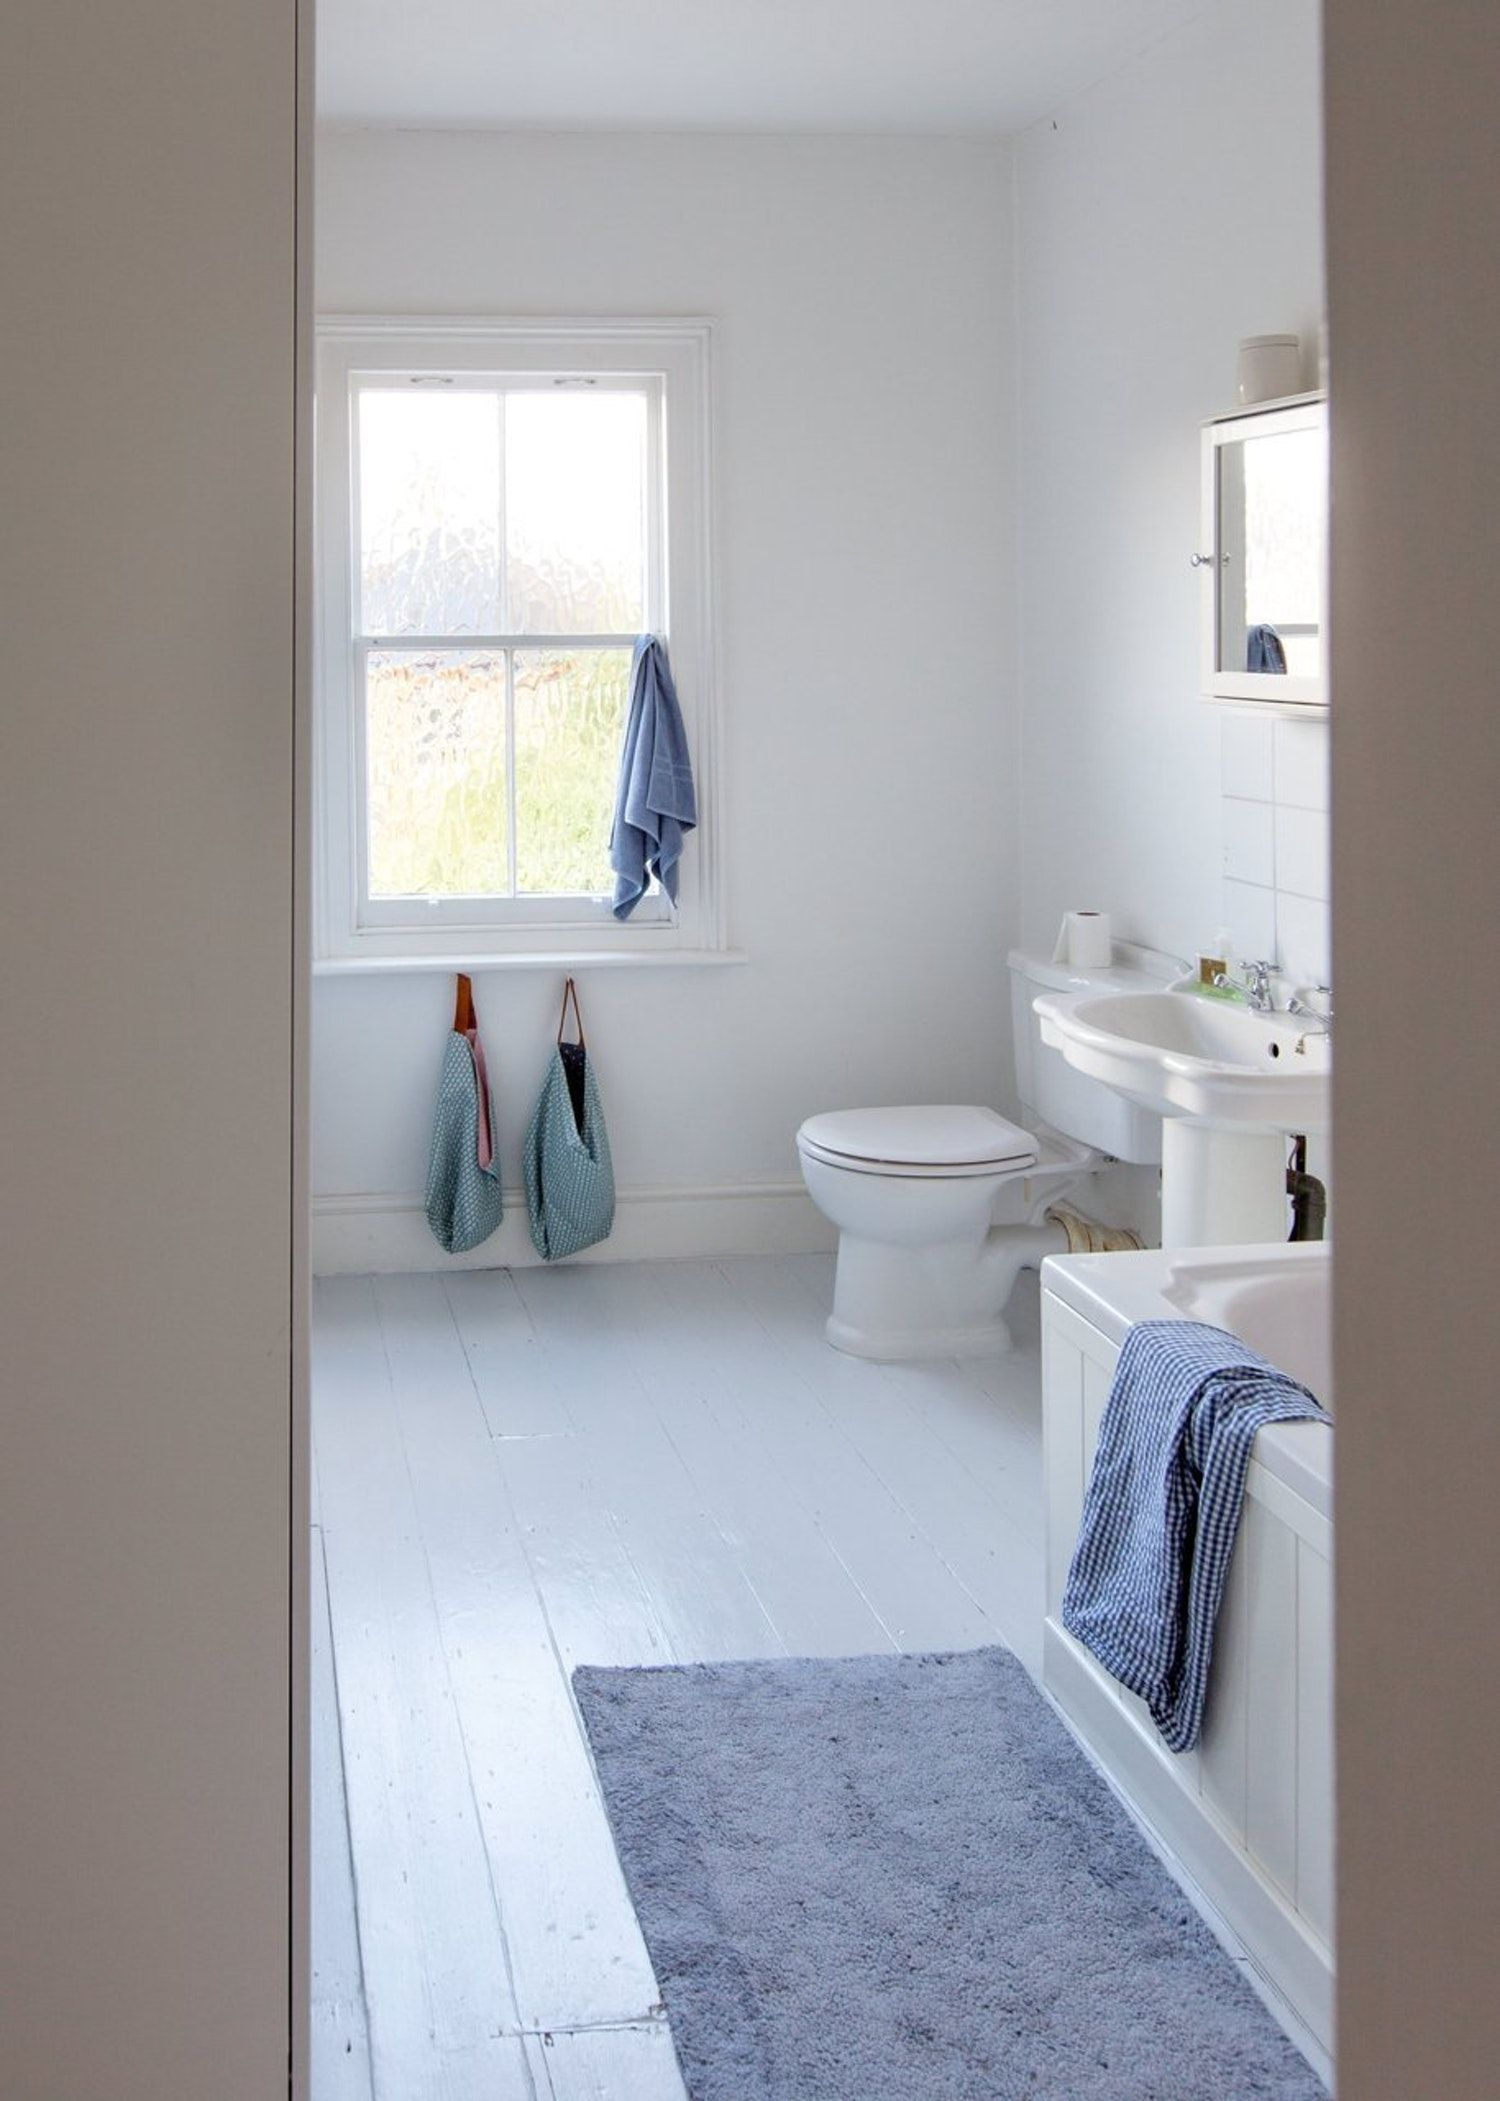 Ways To Unclog A Toilet Without A Plunger Toilet